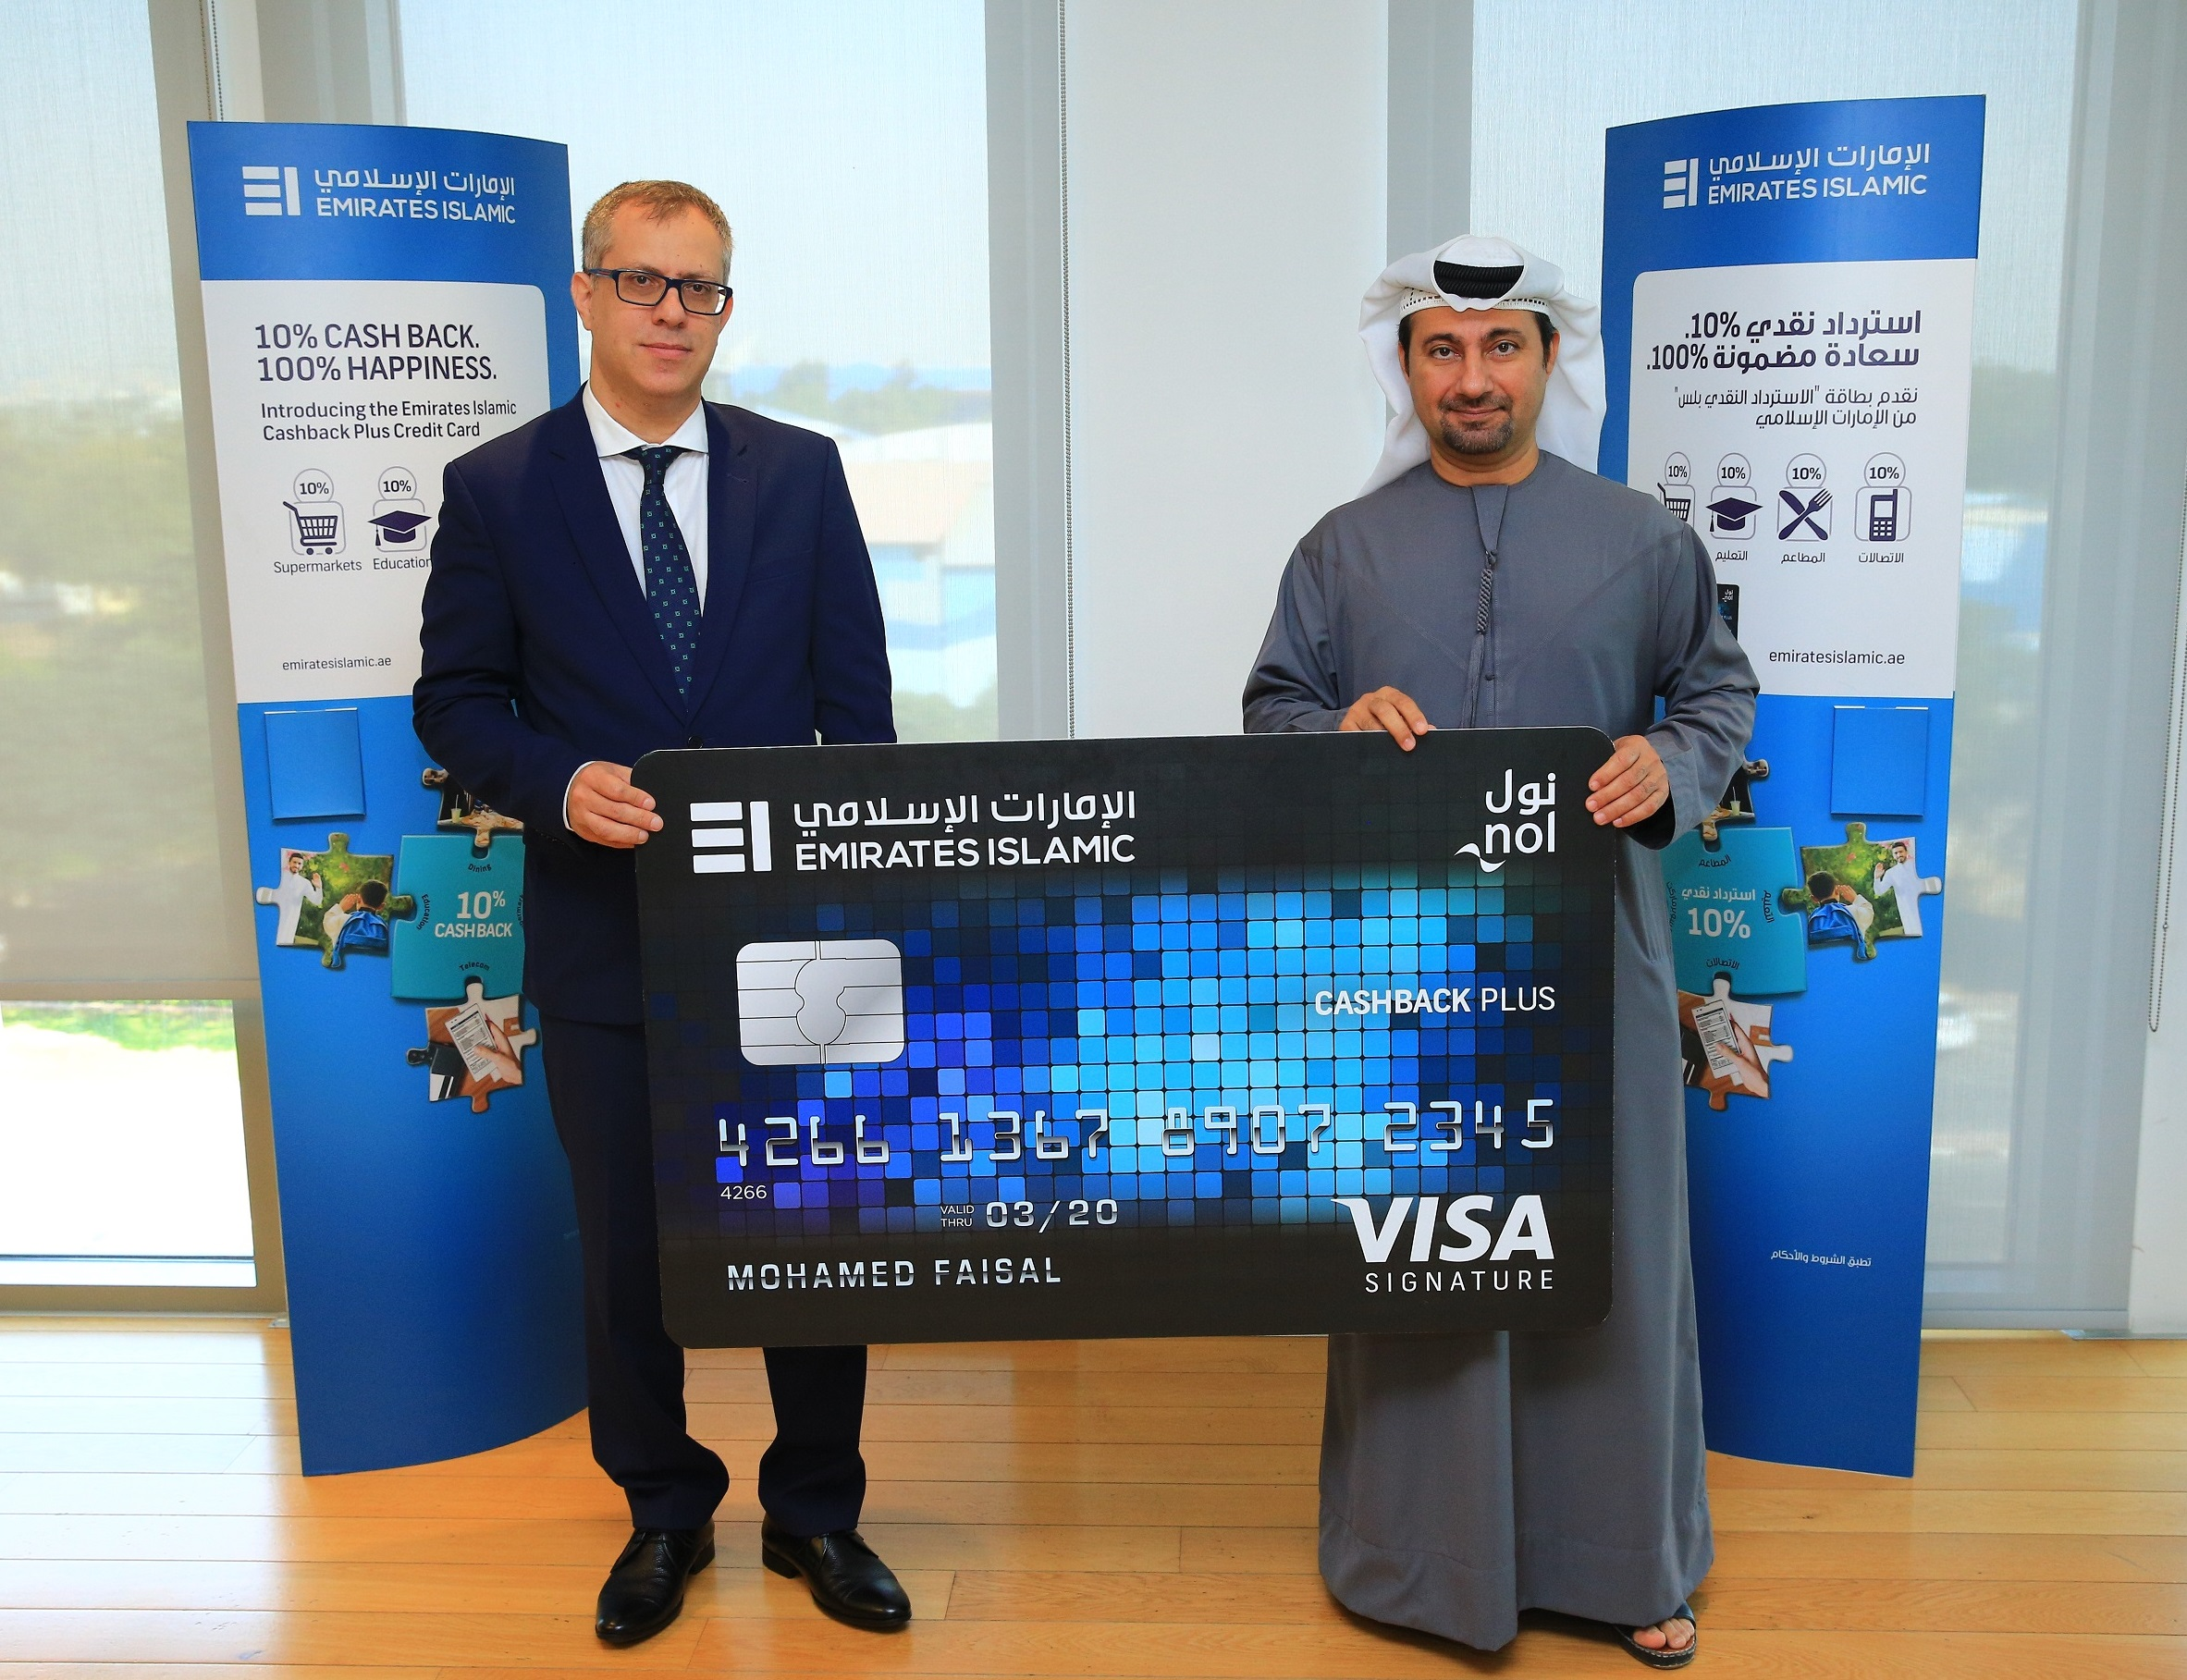 Expo Exhibition Stands Parking : Emirates islamic launches cashback plus visa signature